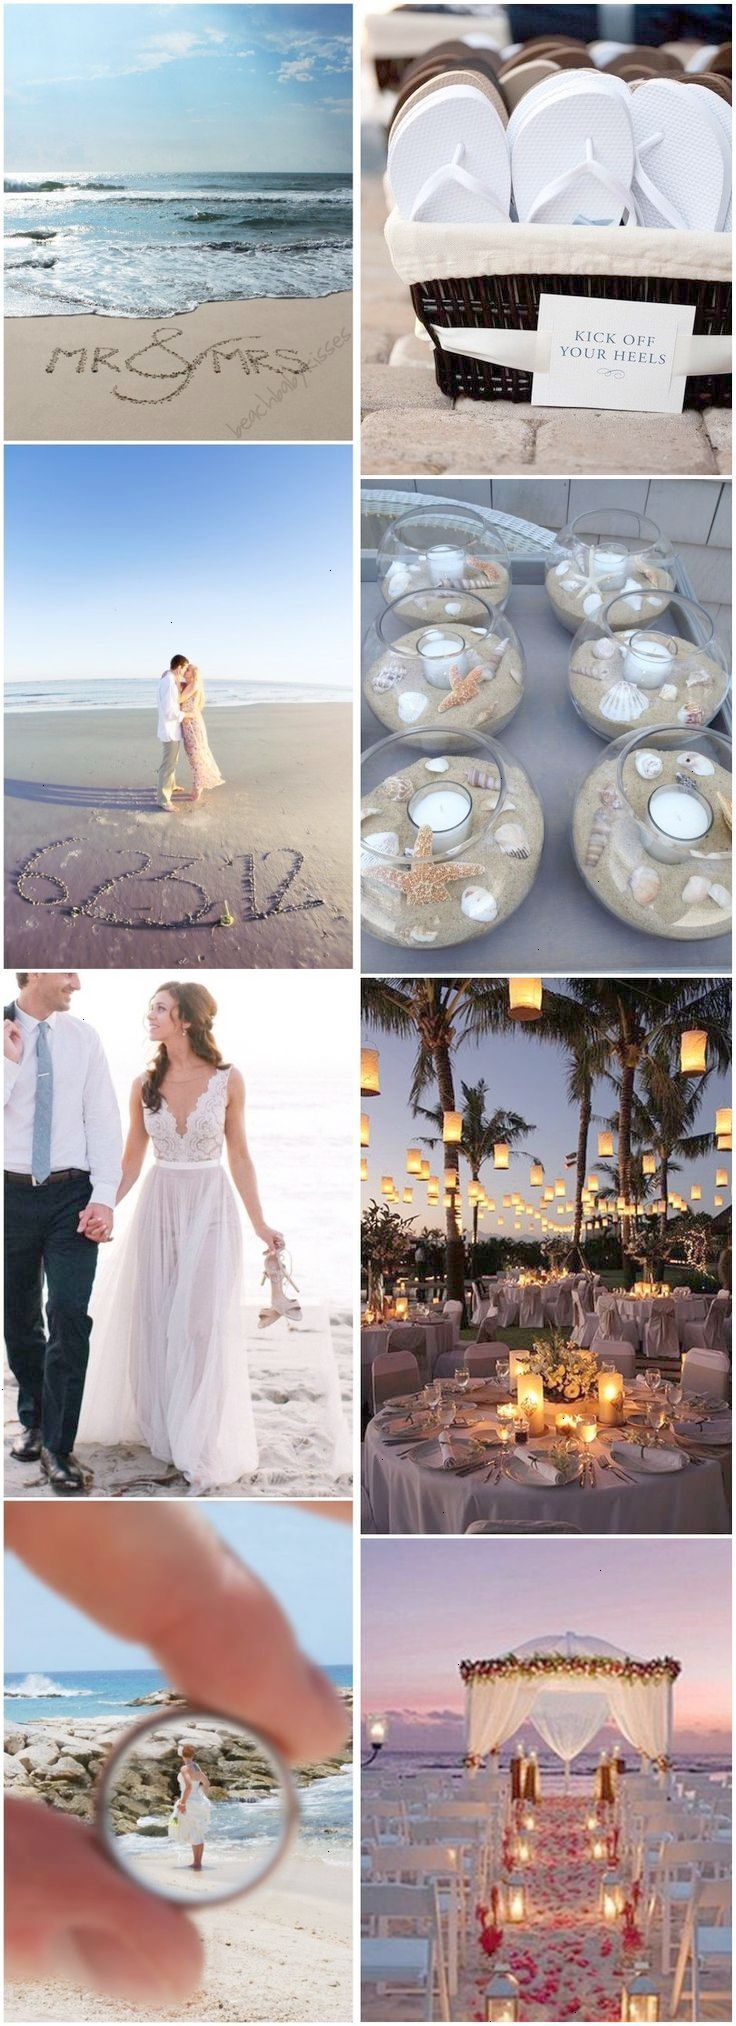 best beach wedding images on pinterest